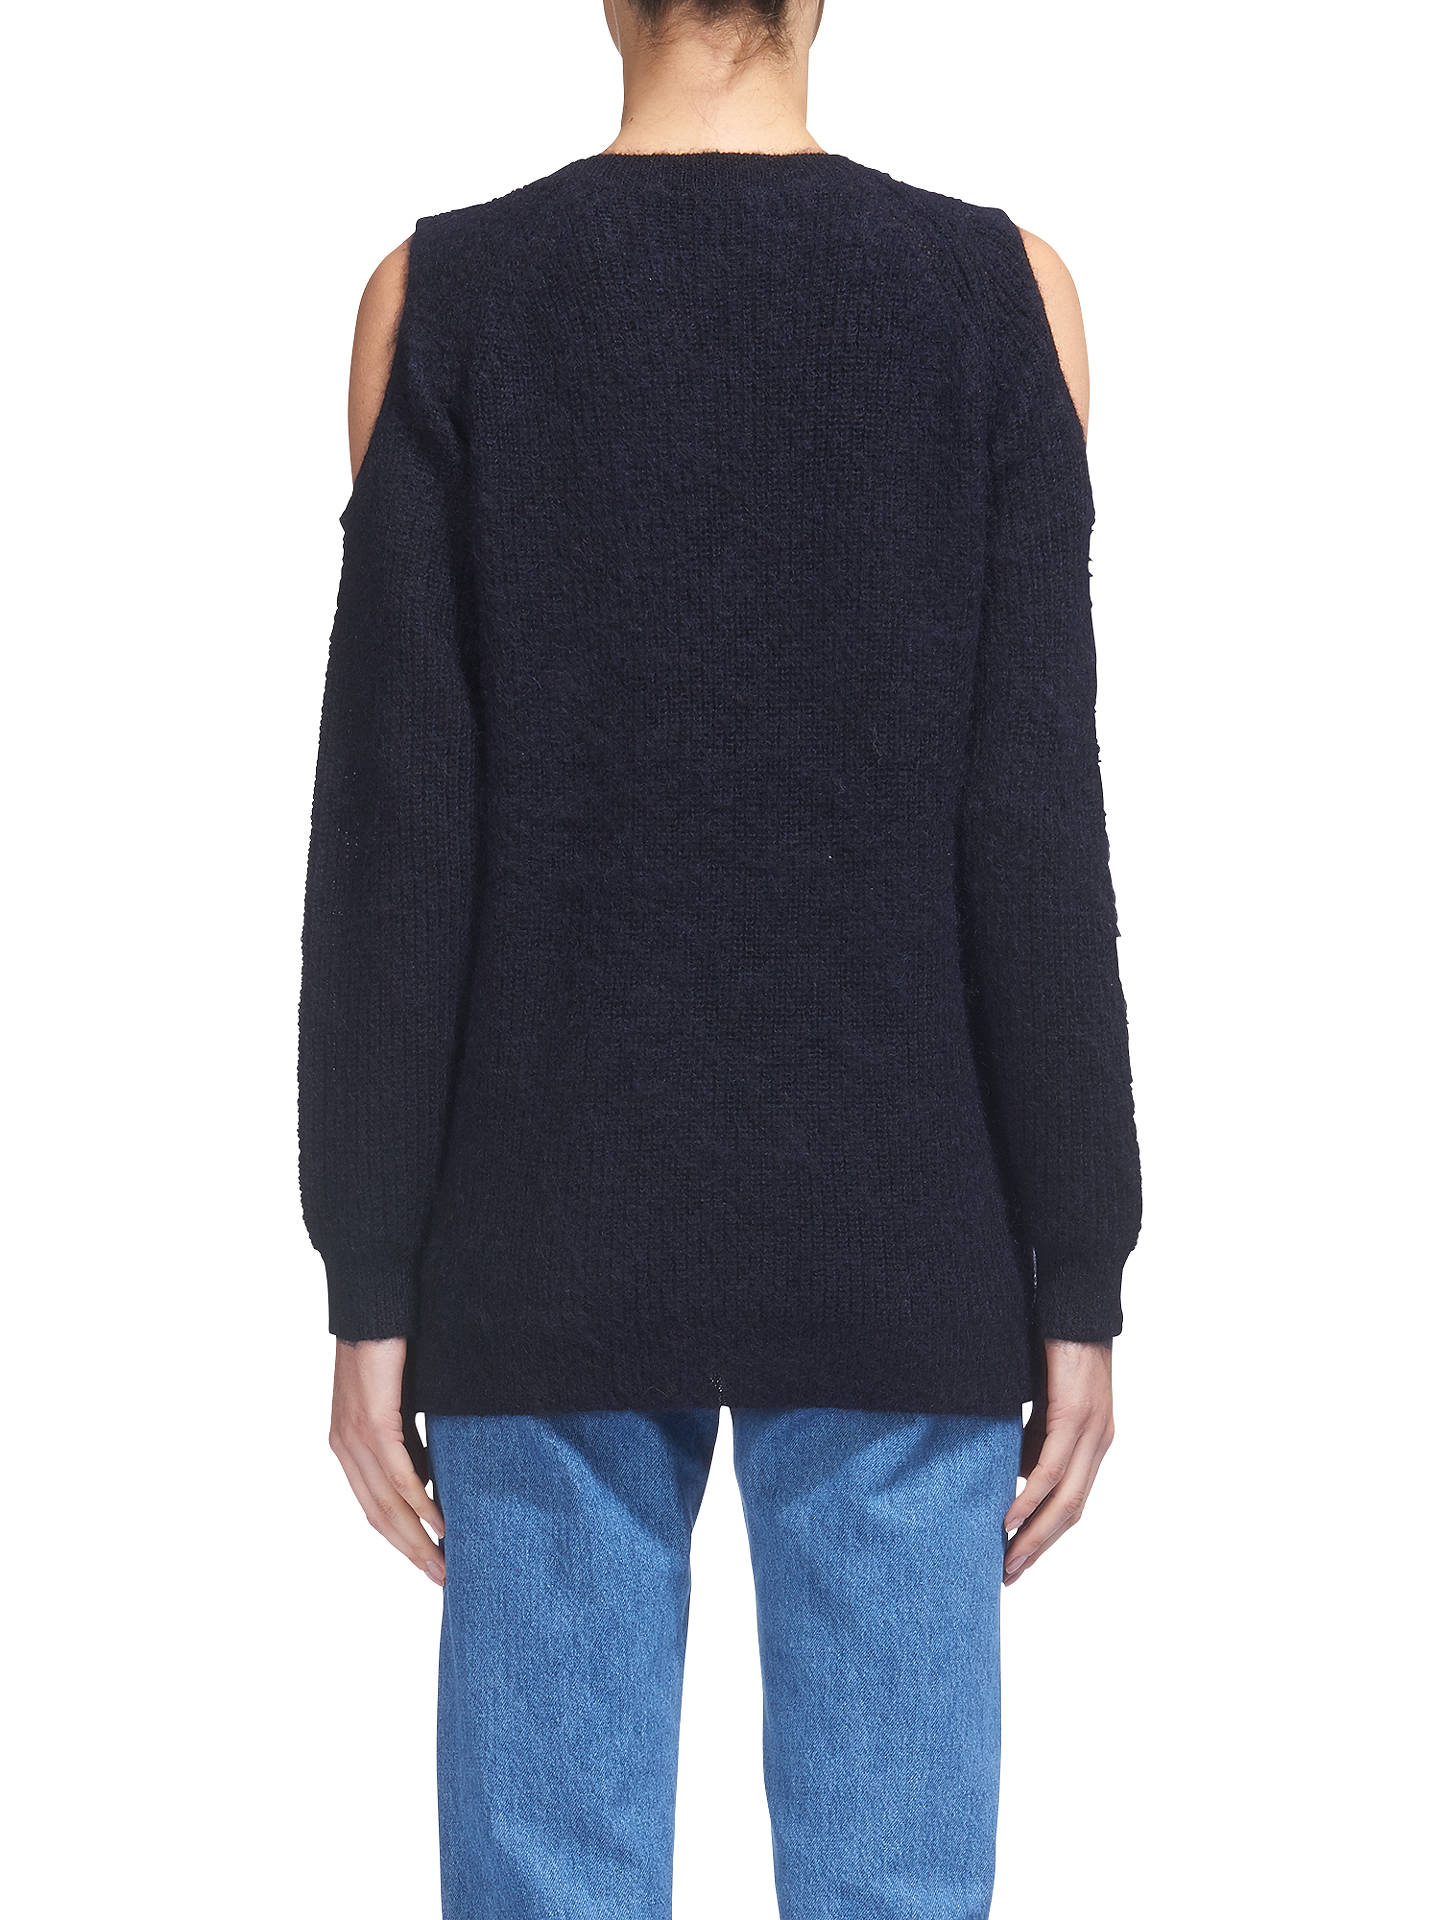 BuyWhistles Cold Shoulder Mohair Jumper, Navy, XS Online at johnlewis.com